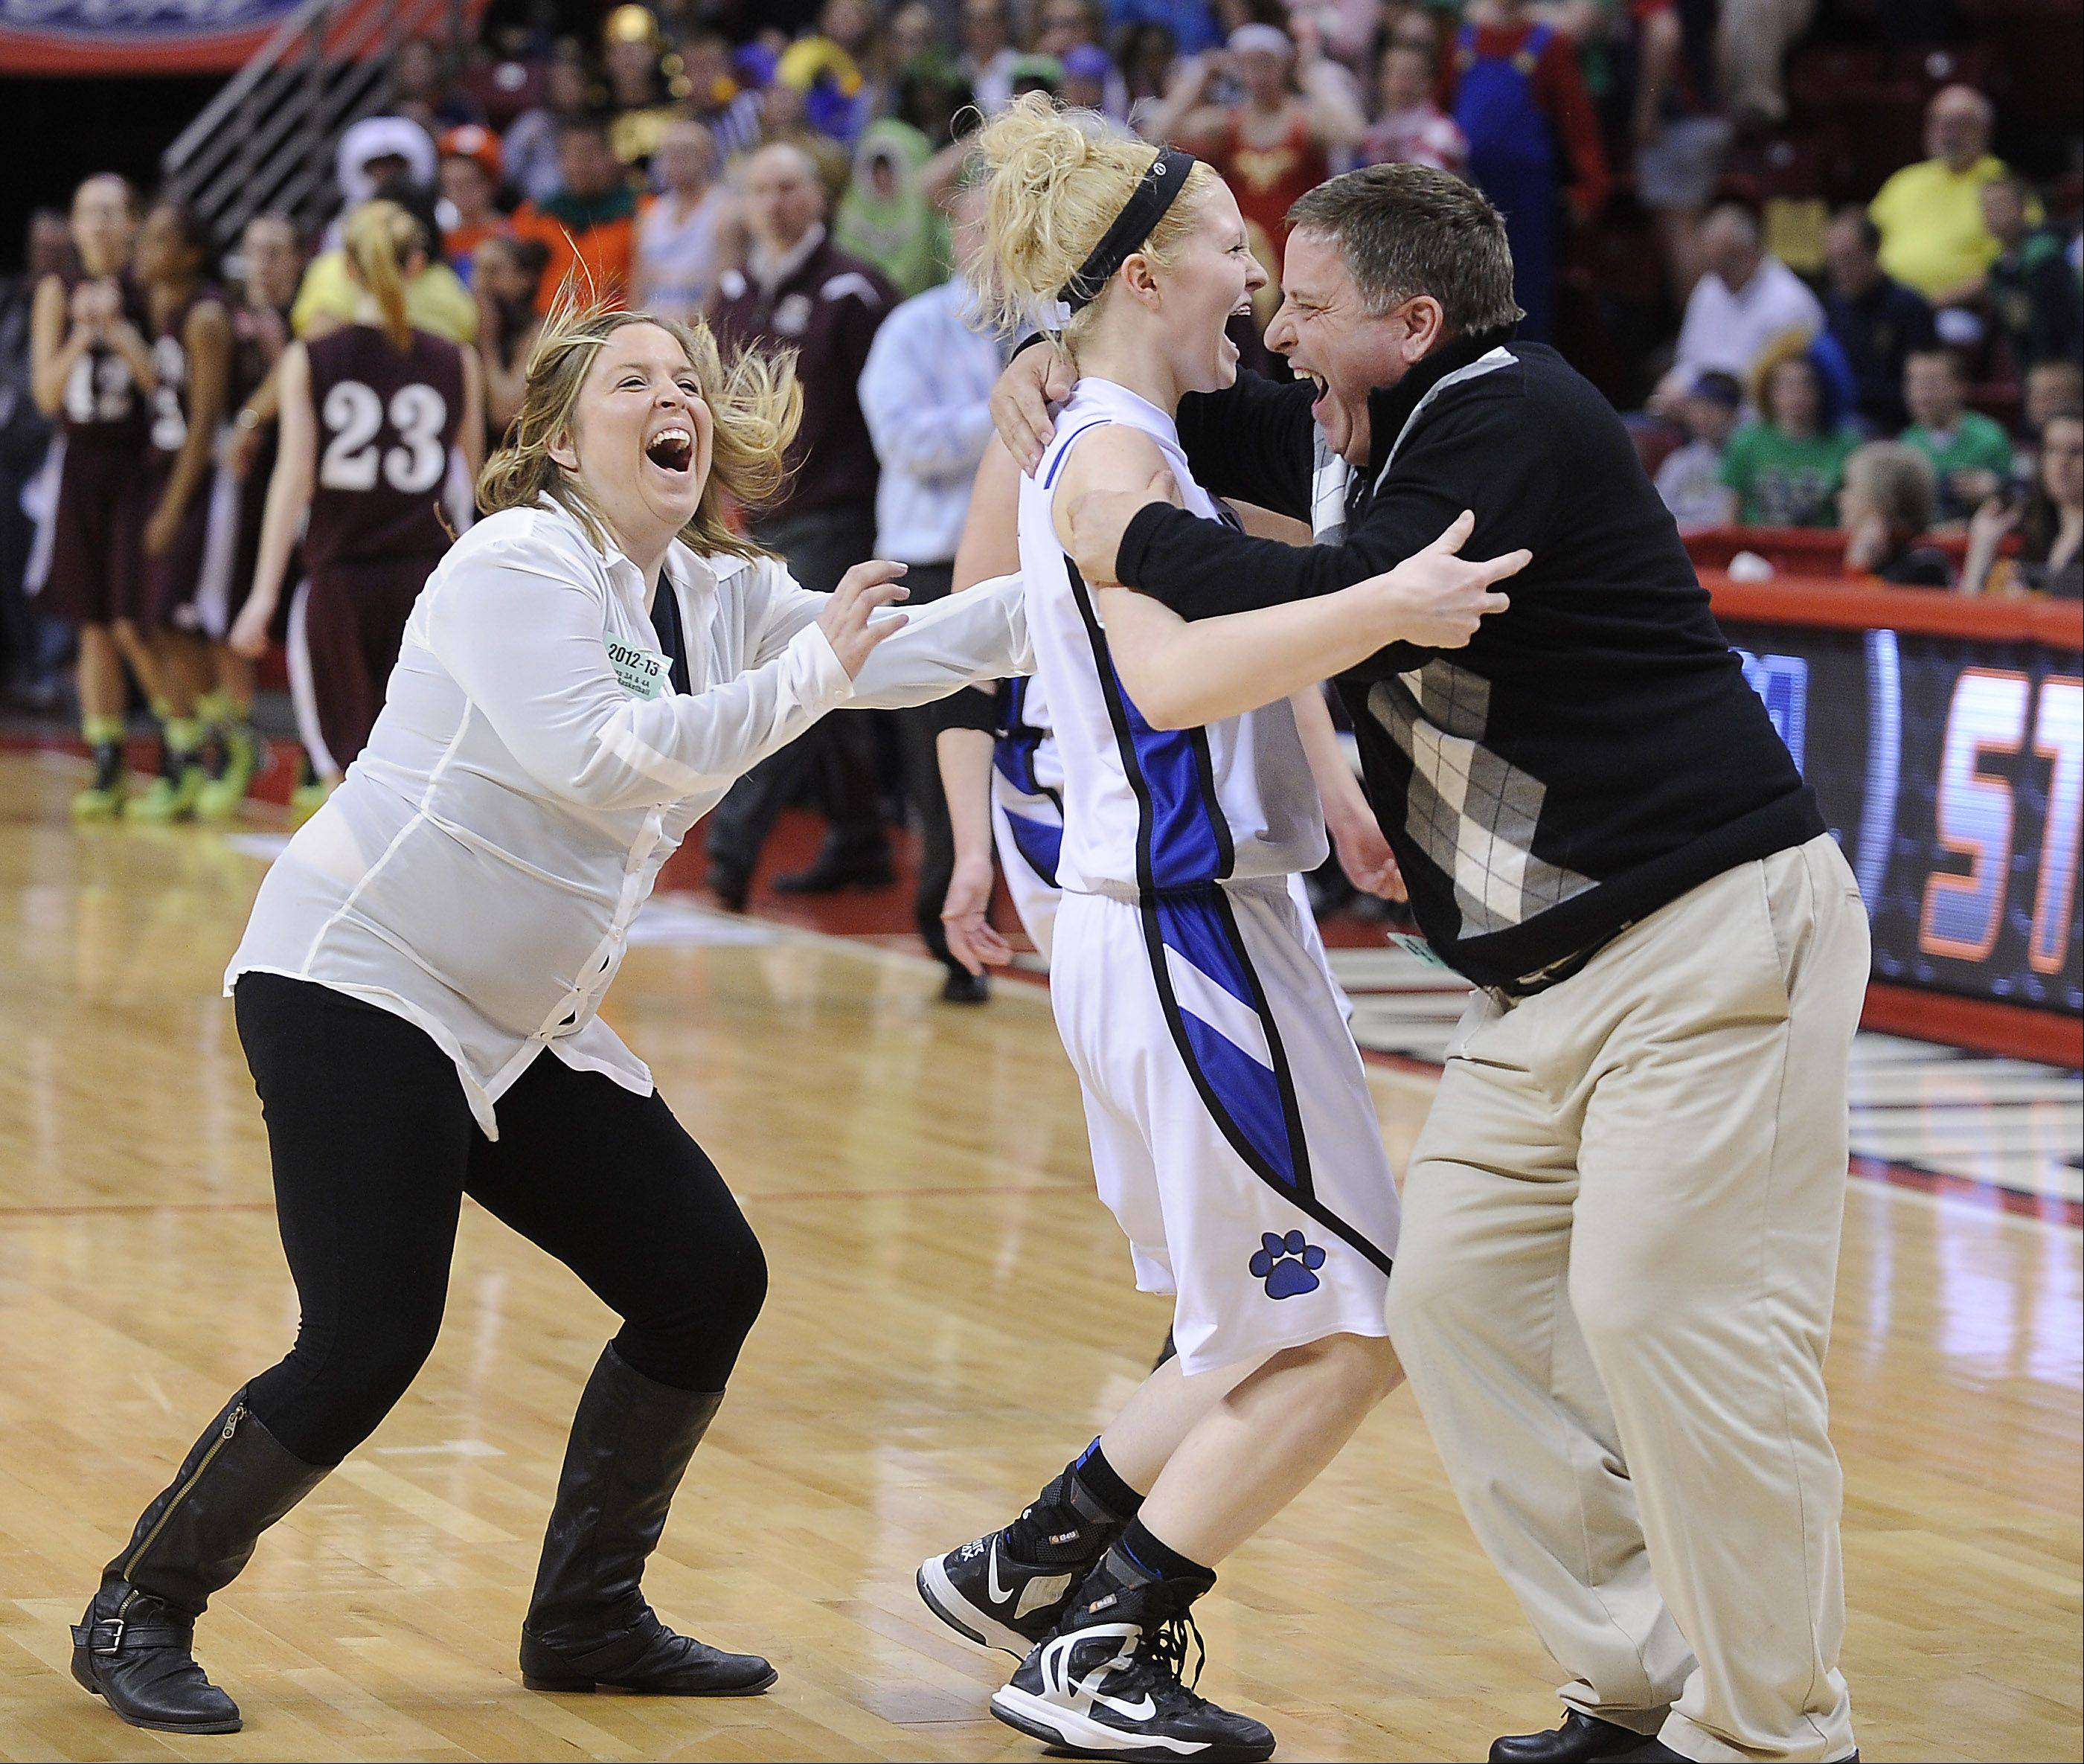 Vernon Hills' Sydney Smith celebrates with her coaches after they beat Montini in overtime at the state Class 3A girls basketball semifinals in Normal on Friday.